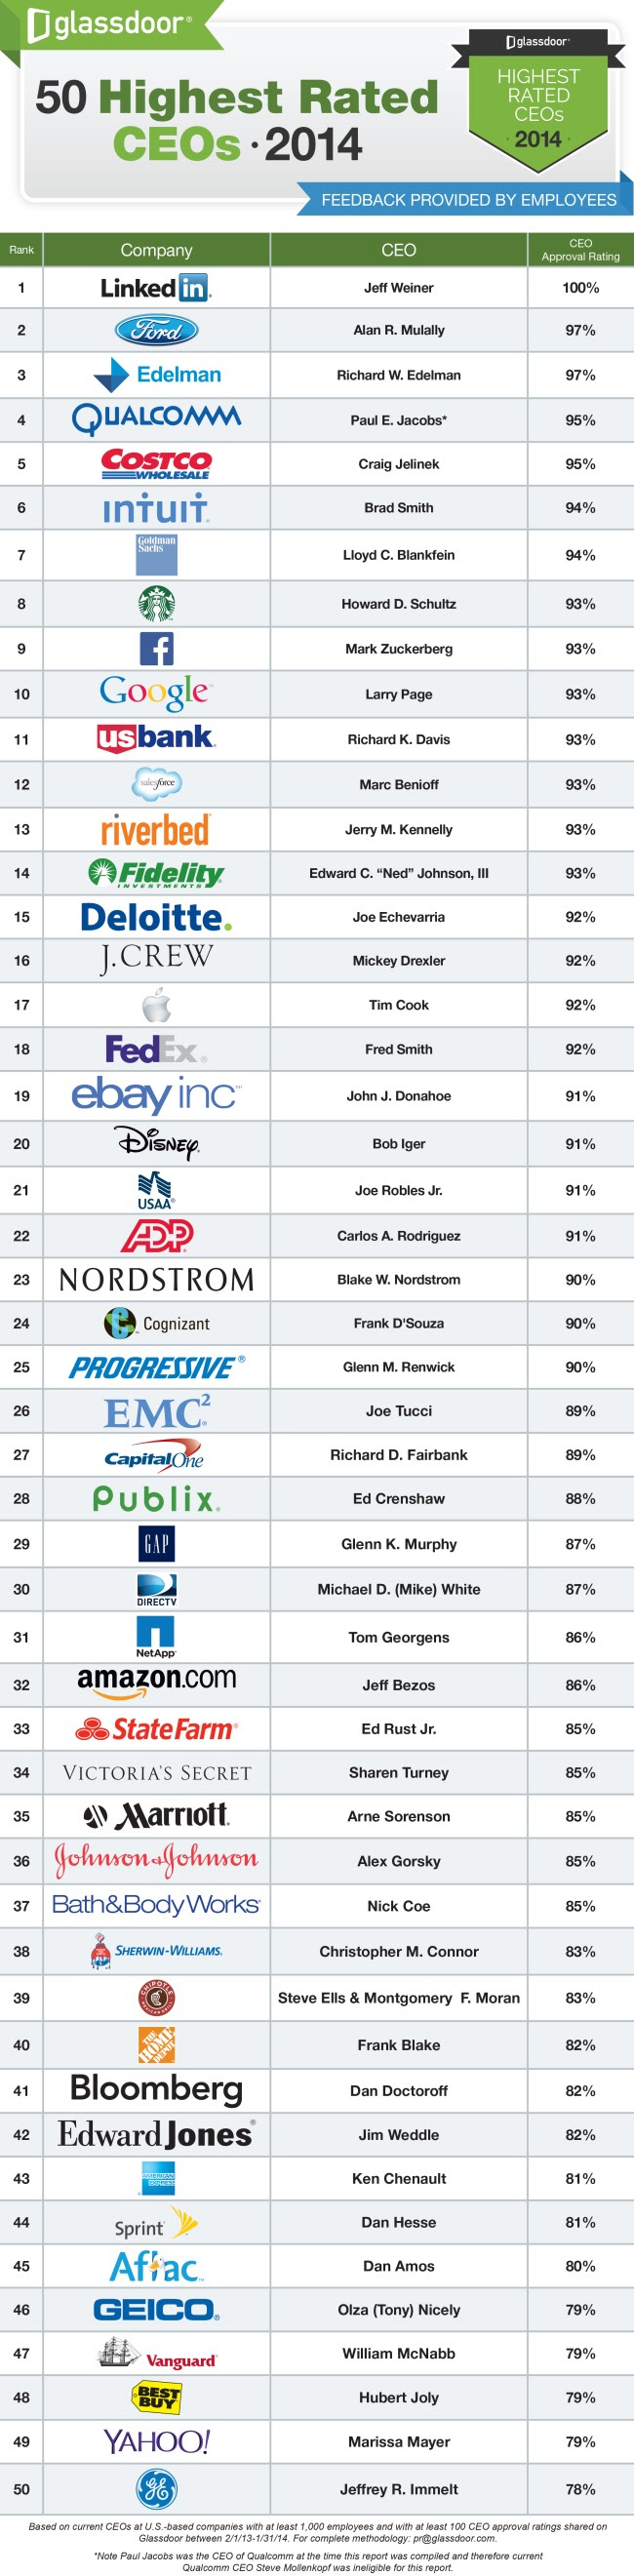 Highest Rated CEOs 2014 Glassdoor: Employees rank LinkedIns Jeff Weiner as CEO of the year; Facebooks Mark Zuckerberg loses top spot